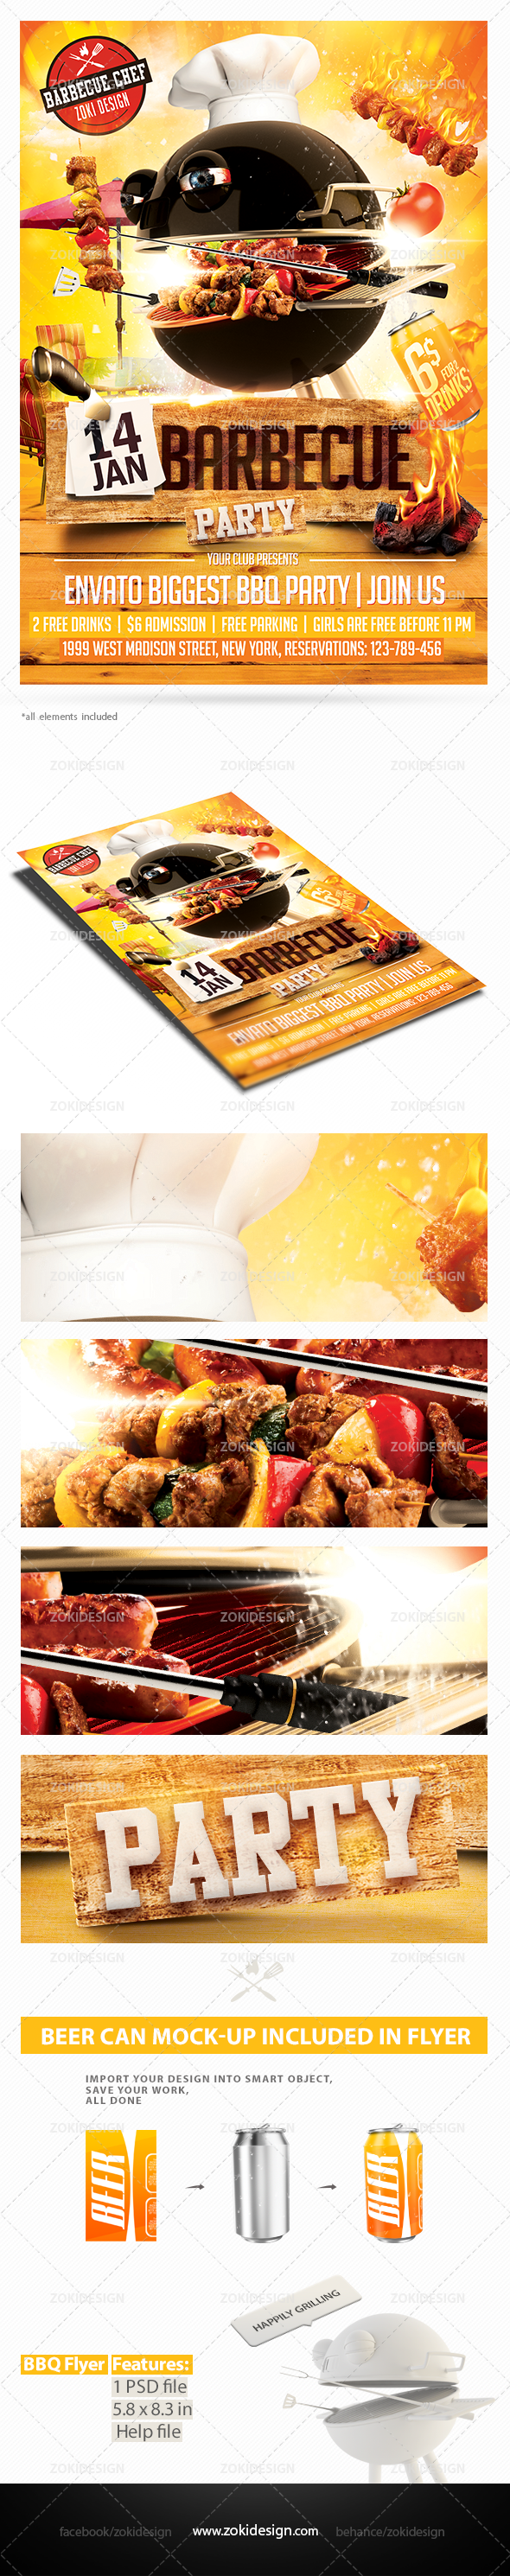 Barbecue Party Flyer | Zokidesign